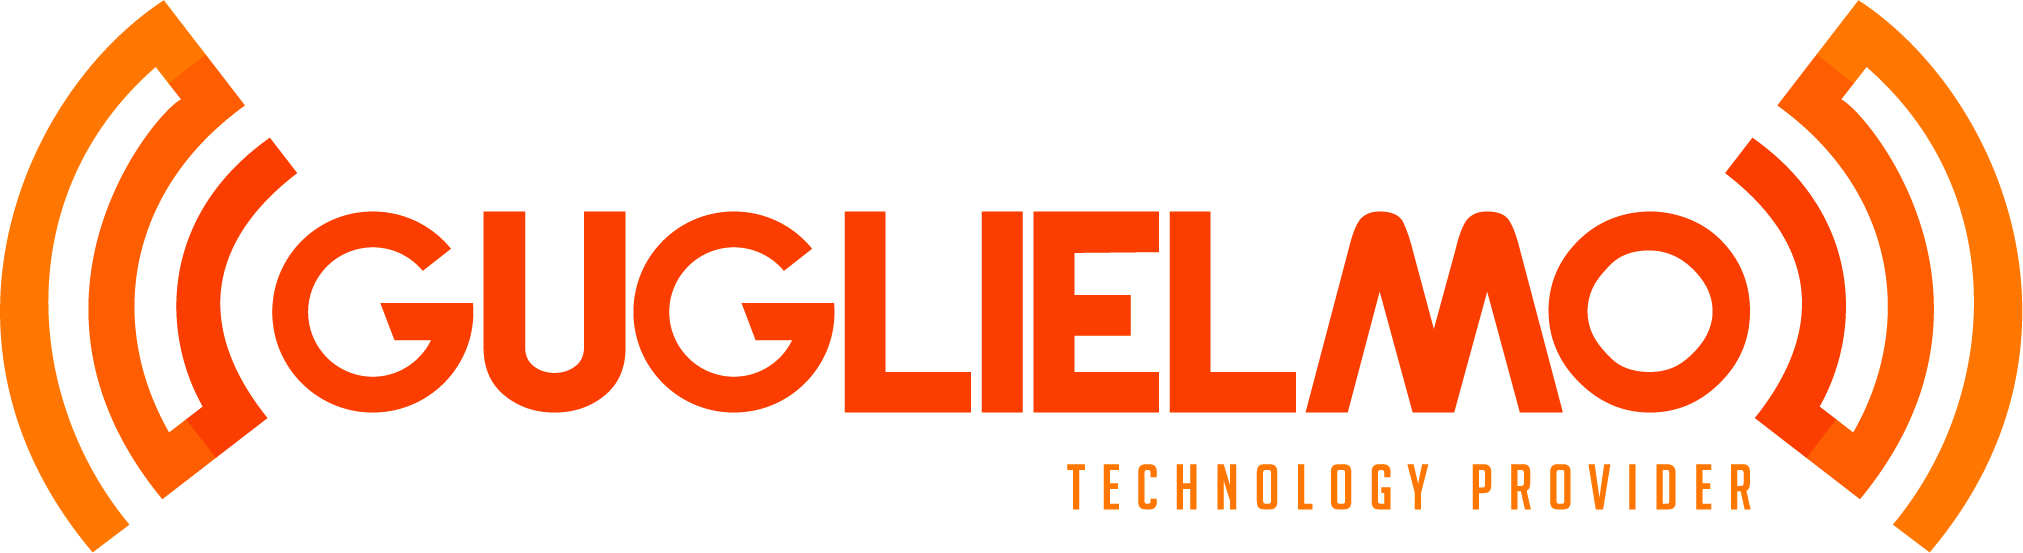 Guglielmo | Wireless Technology Provider